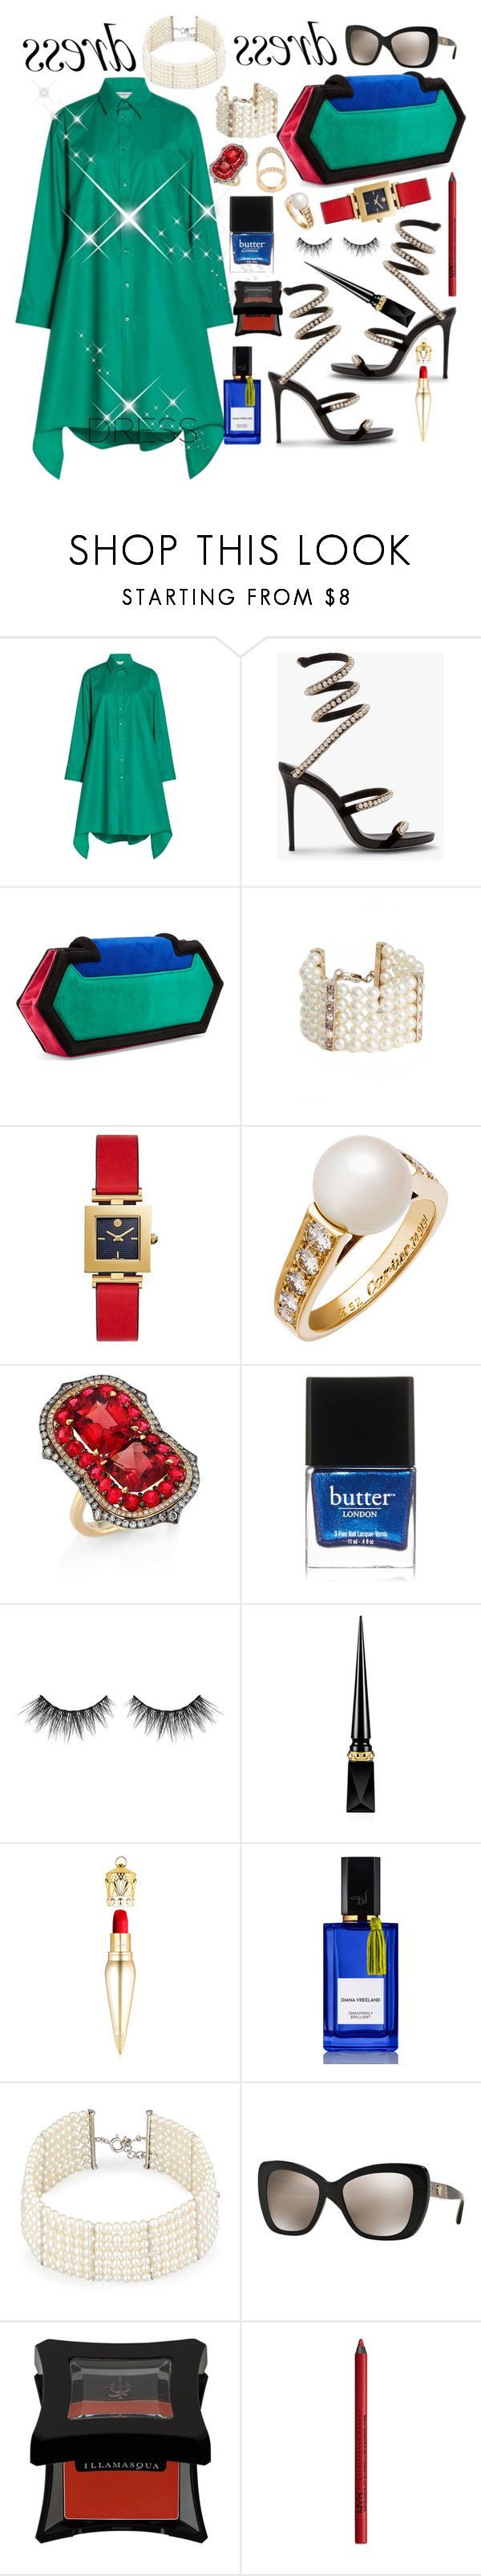 """Dress 🌹"" by seanahr ❤ liked on Polyvore featuring Balenciaga, Balmain, St. John, Tory Burch, Cartier, Ivy, Butter London, Huda Beauty, Christian Louboutin and Diana Vreeland"